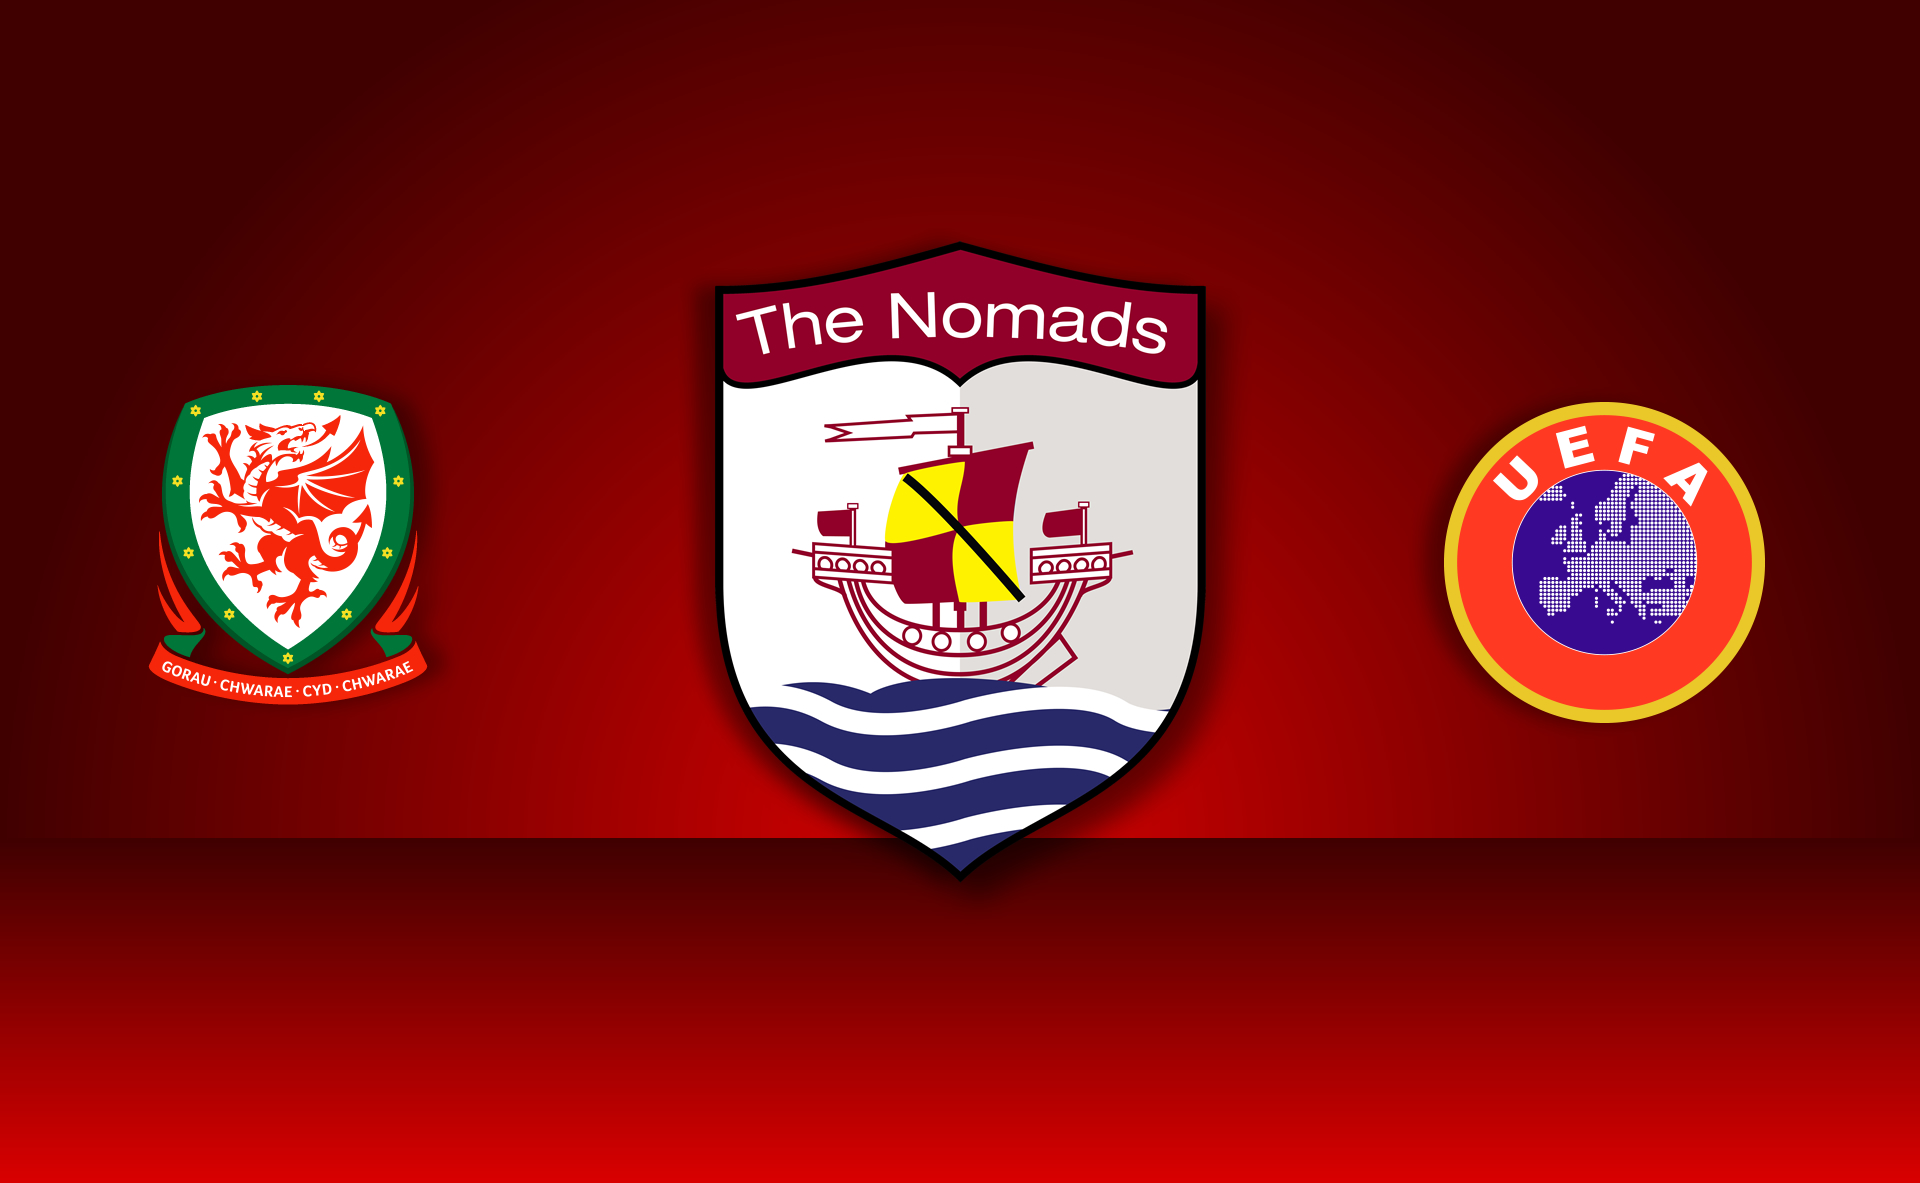 Nomads achieve FAW and UEFA licenses